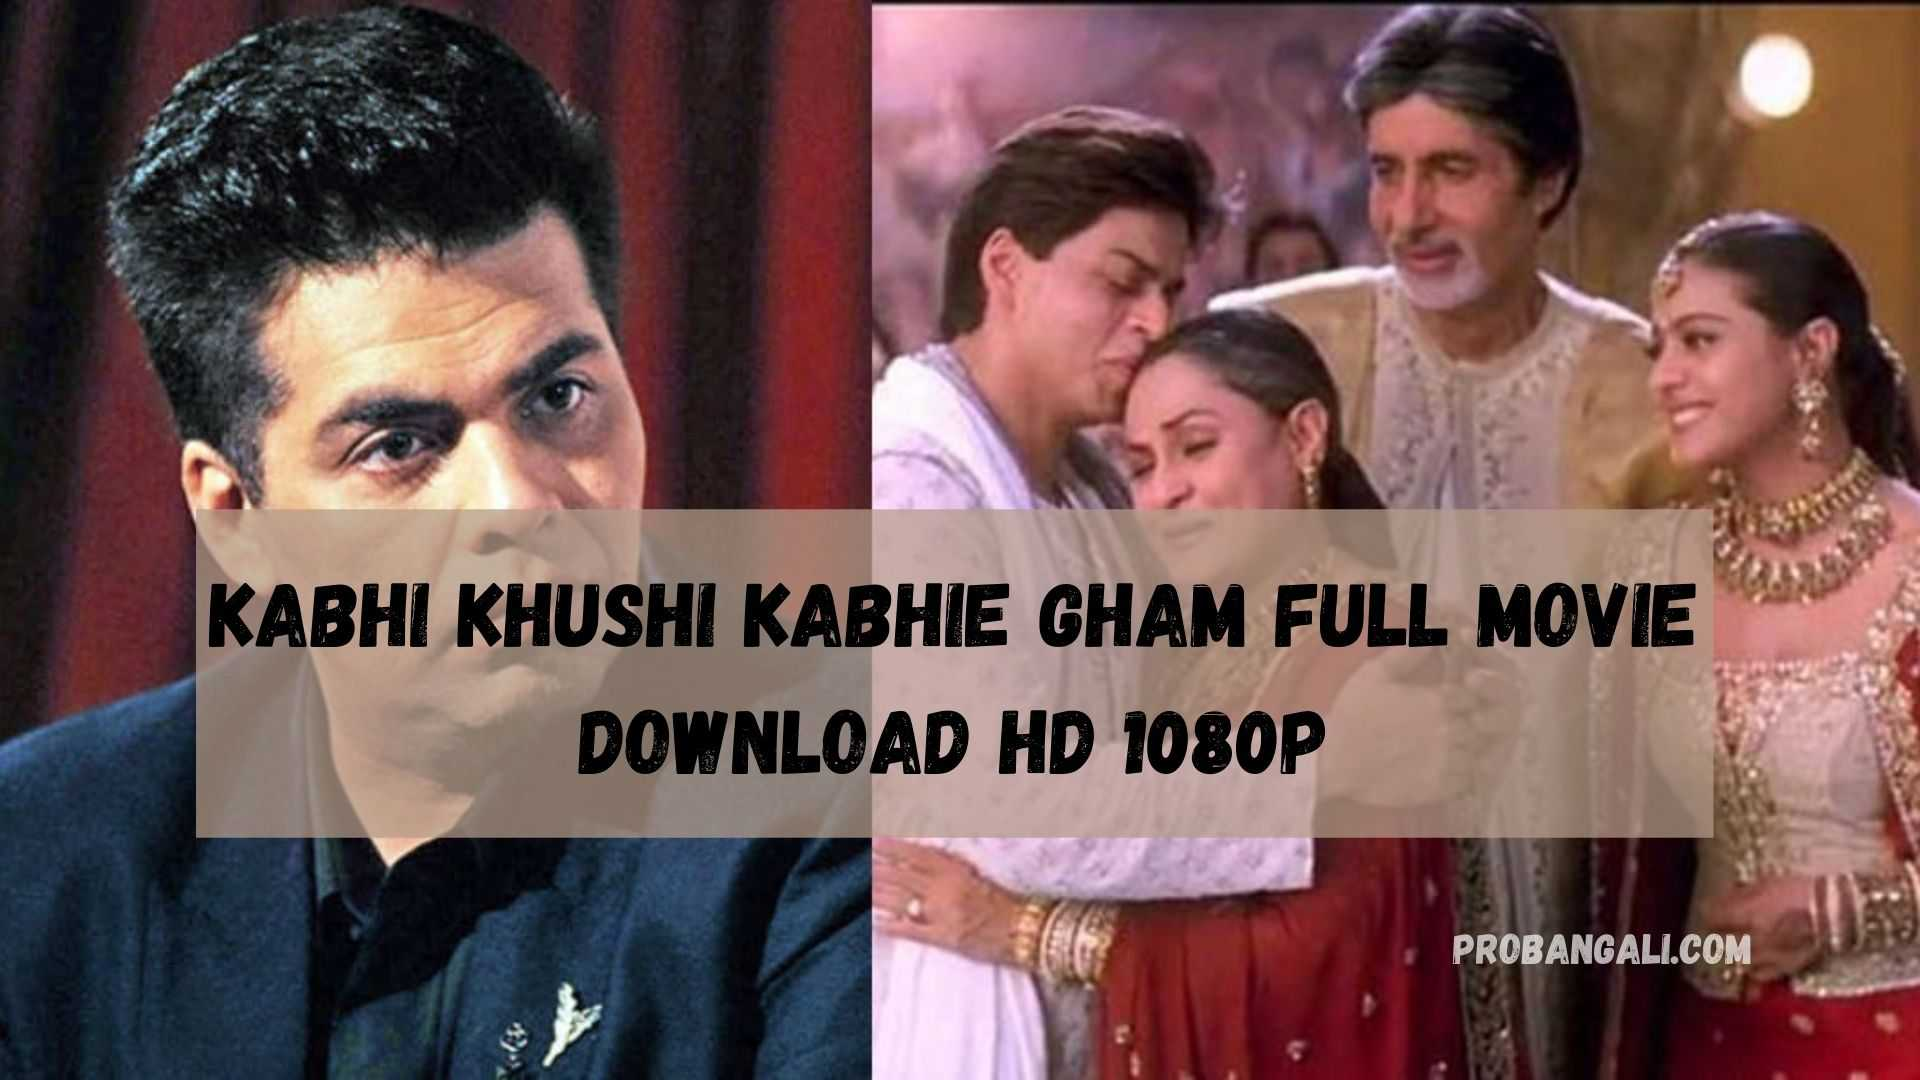 Kabhi khushi kabhie gham full movie download hd 1080p